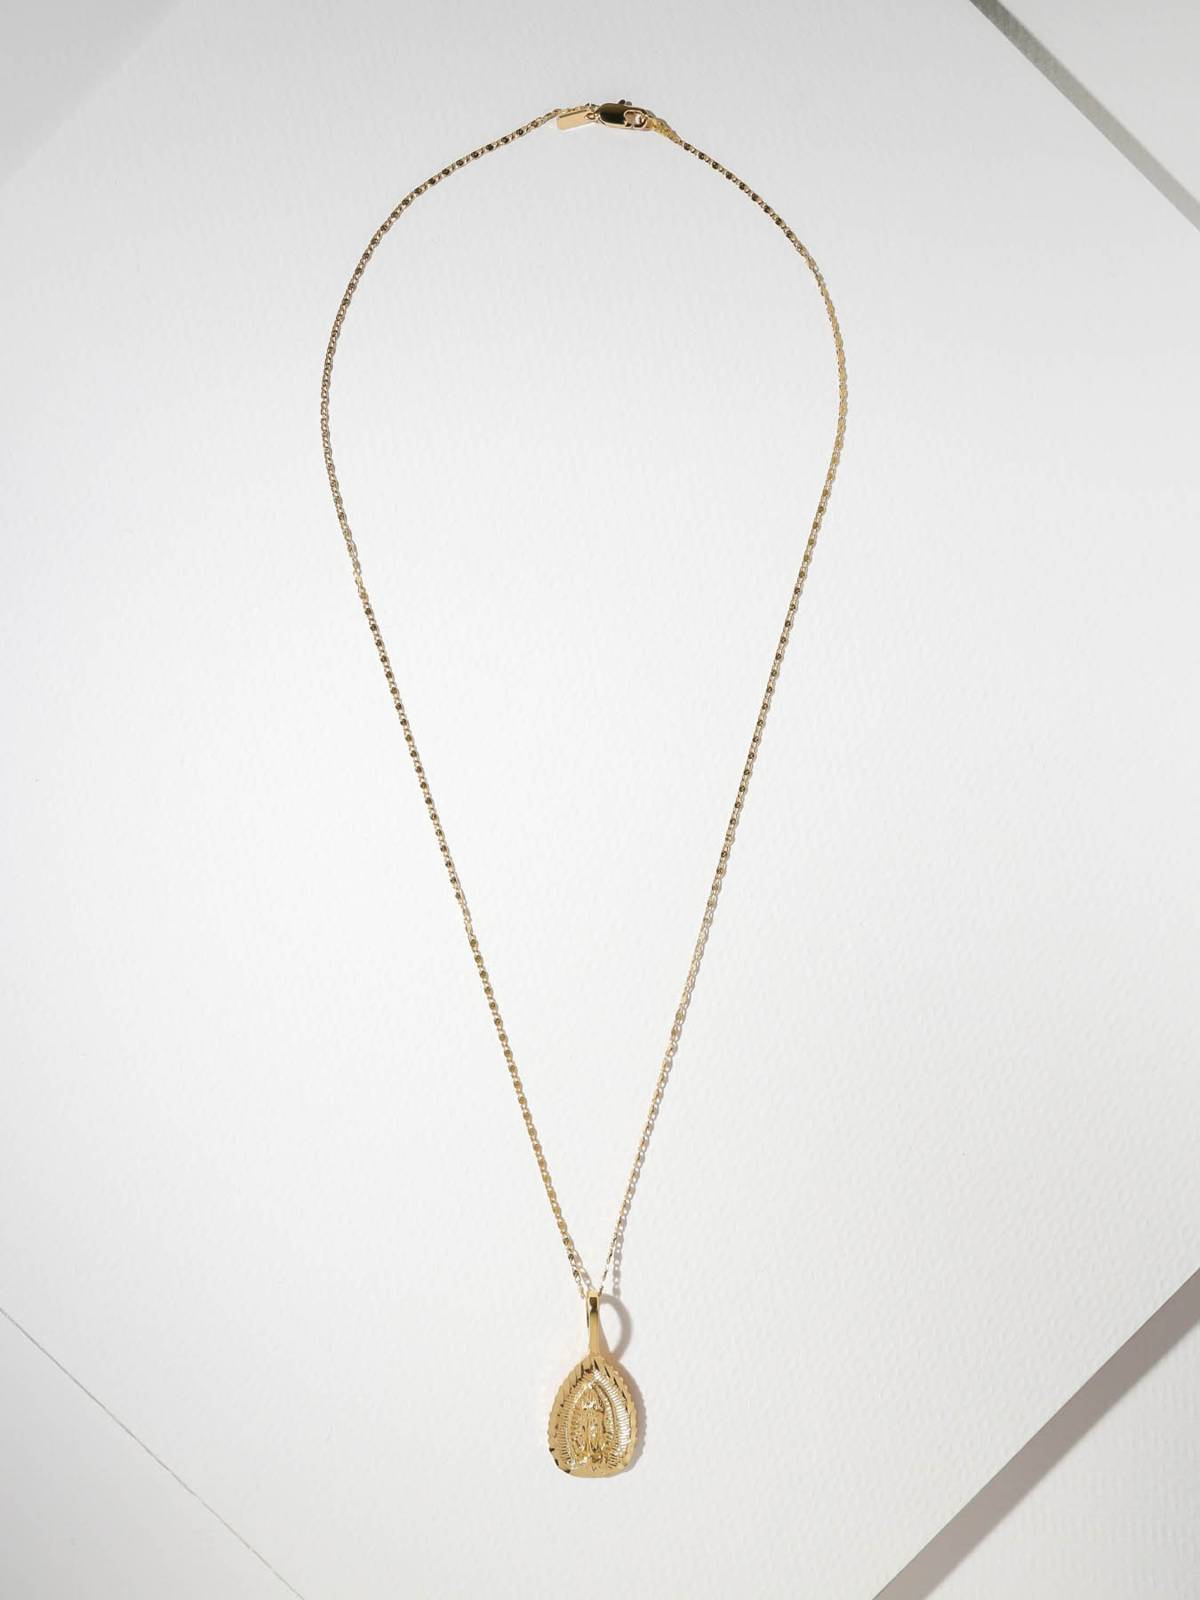 Sale Items The Saint Mary Gold Necklace Vanessa Mooney